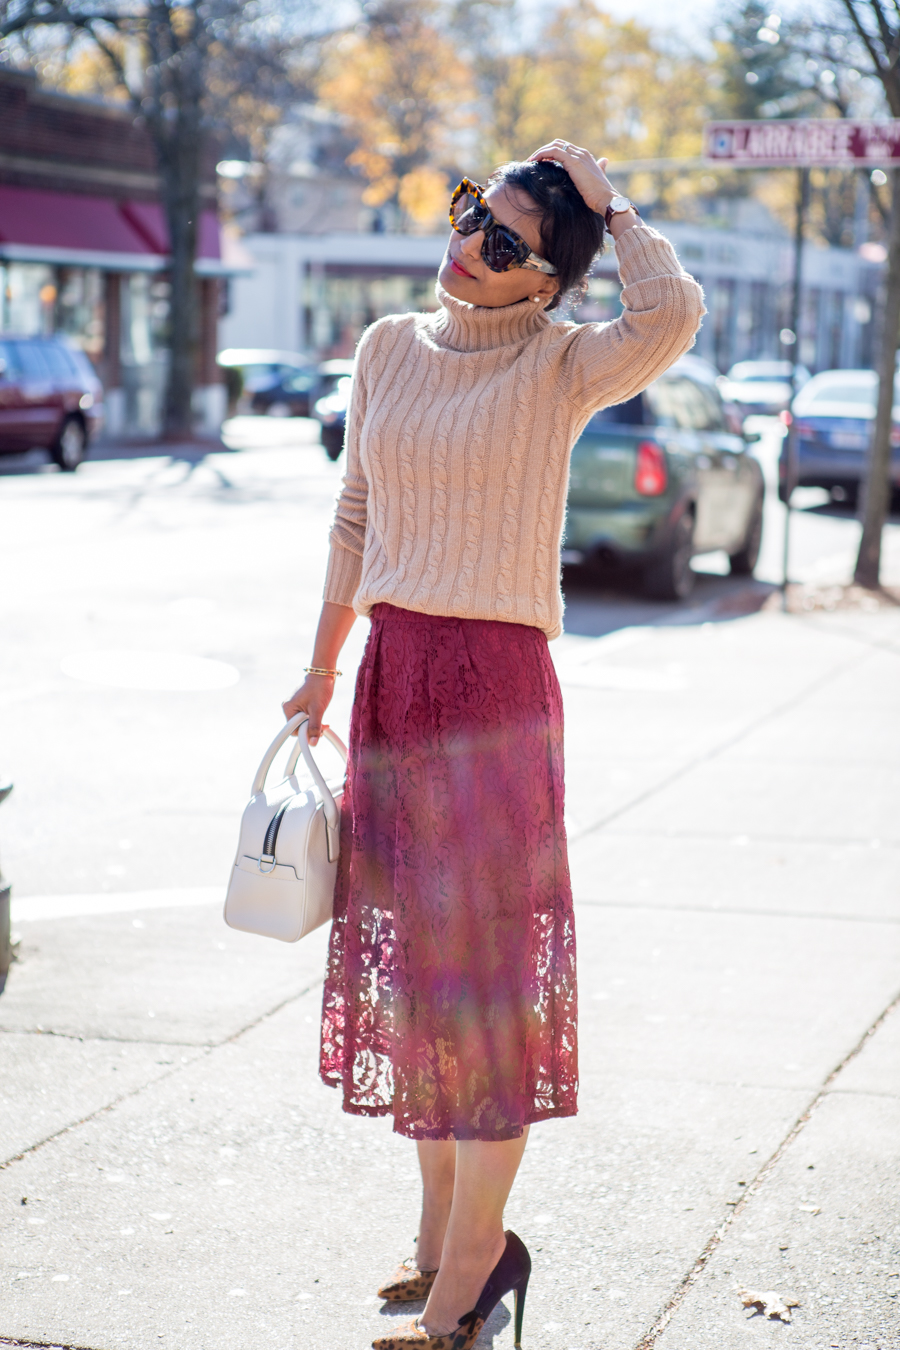 work style, office style, petite fashion, fall fashion, 9to5, office outfit, business casual, feminine work style, dressy, lace skirt, midi skirt, jcrew, h&m, petite style, petite style studio, affordable style, easy style, fashion over 40